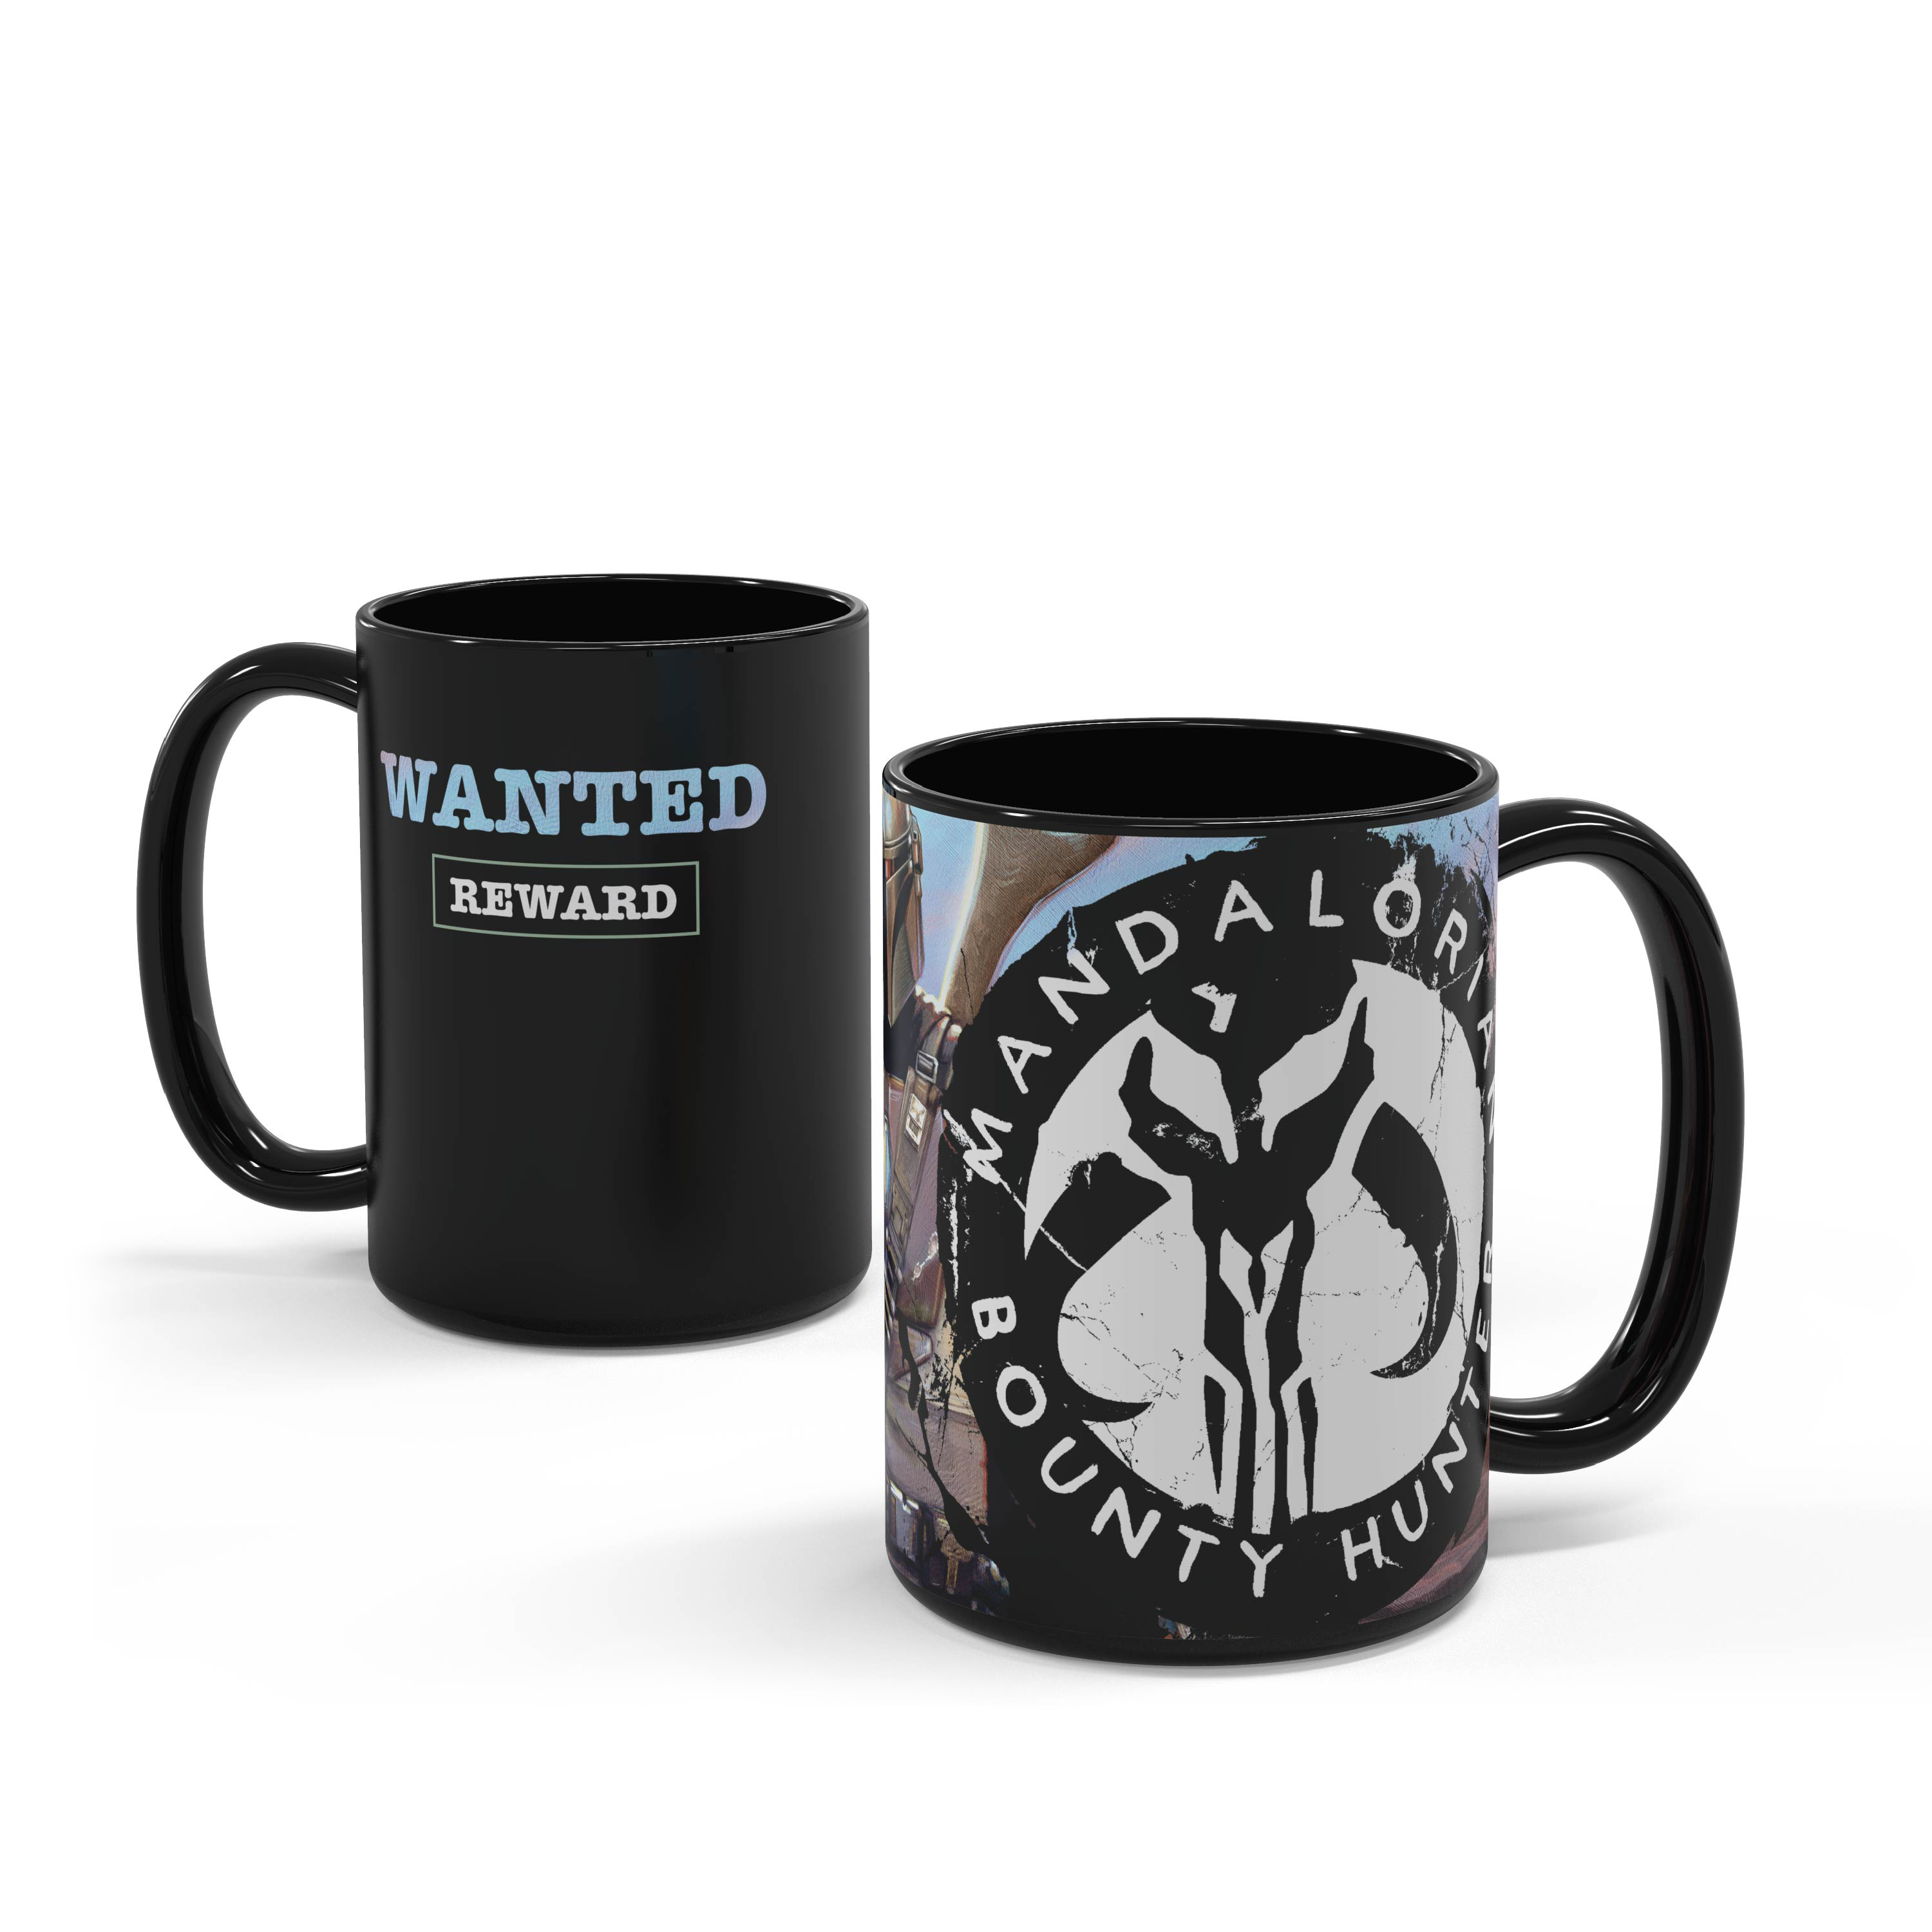 Star Wars: The Mandalorian 15 ounce Ceramic Coffee Mugs, The Mandalorian slideshow image 6